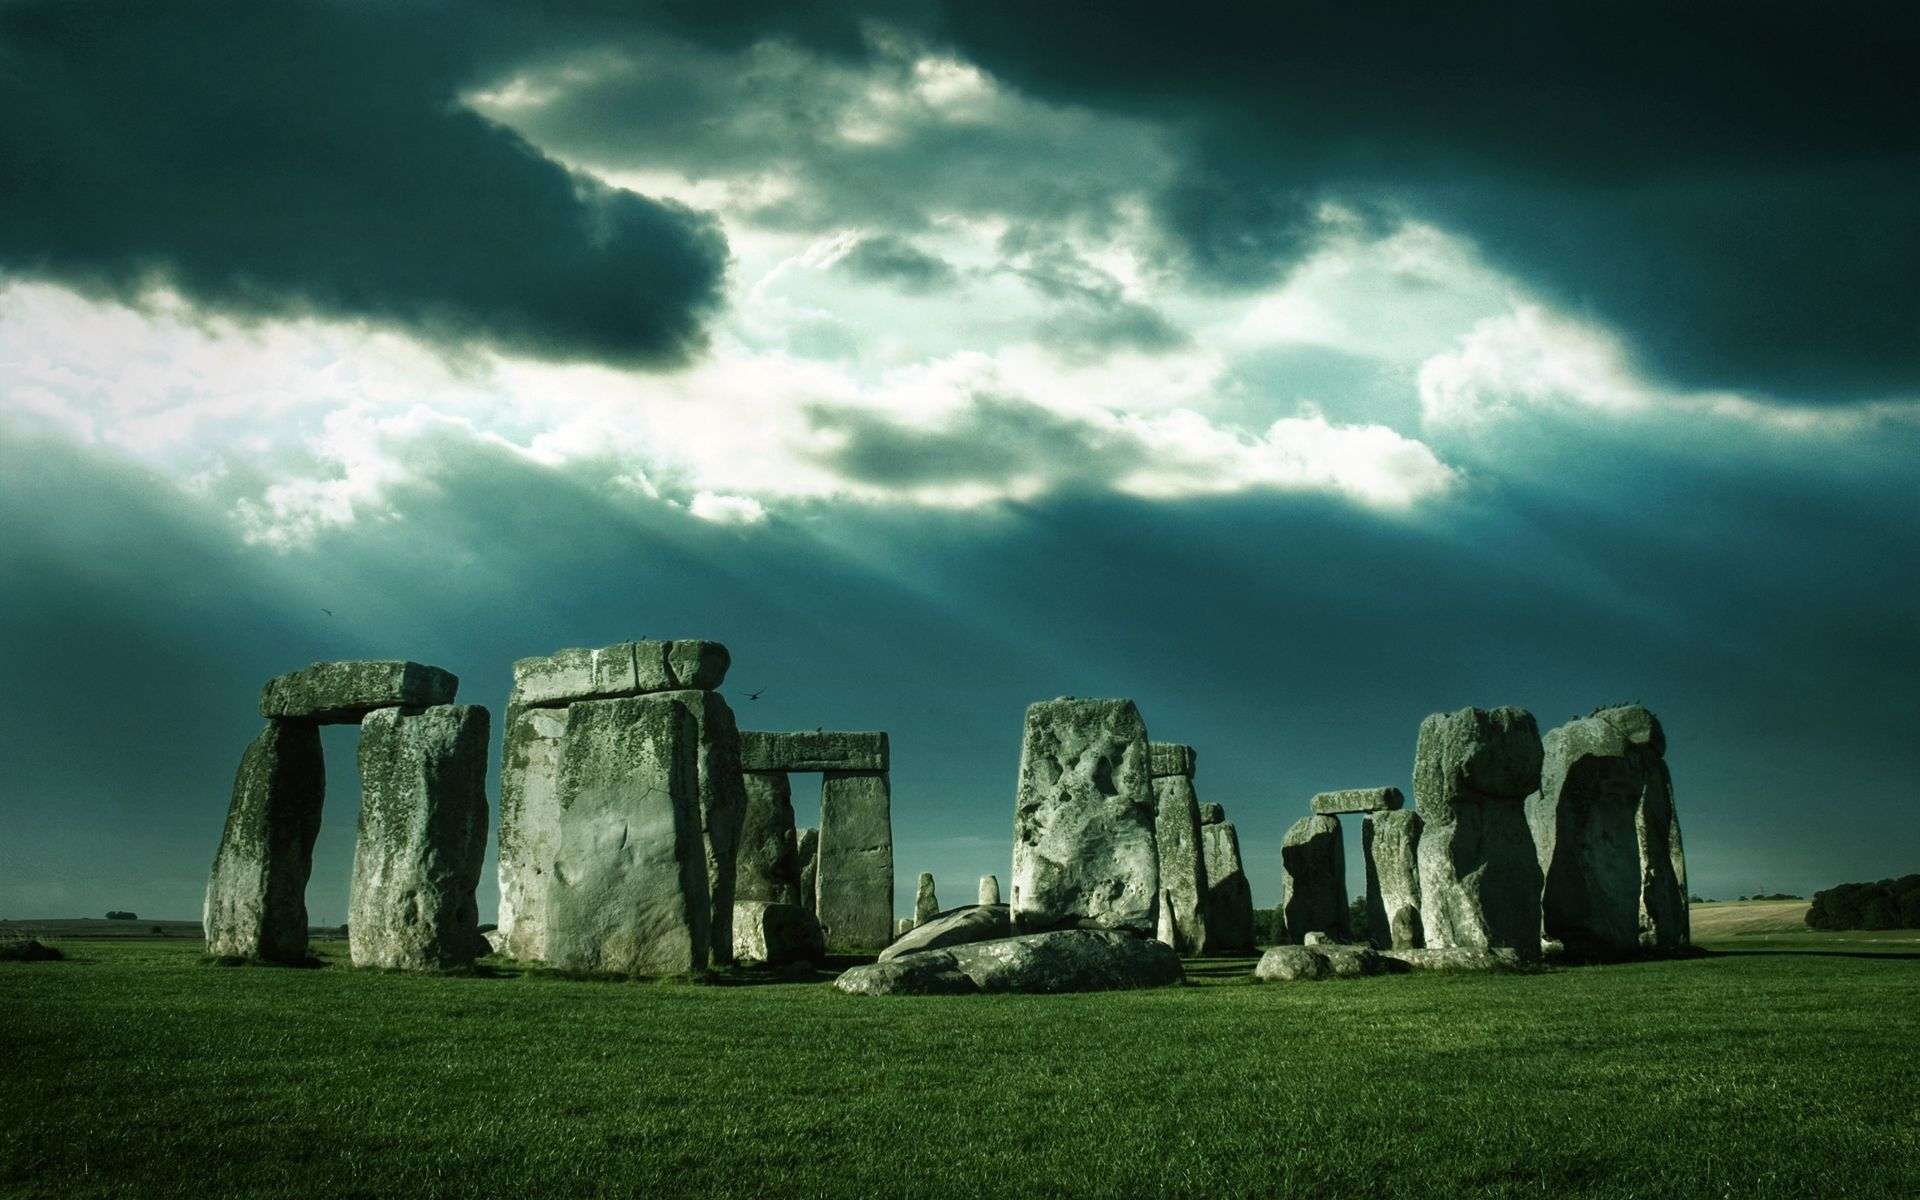 Stonehenge Wallpapers High Resolution IQ2IP71   4USkY 1920x1200